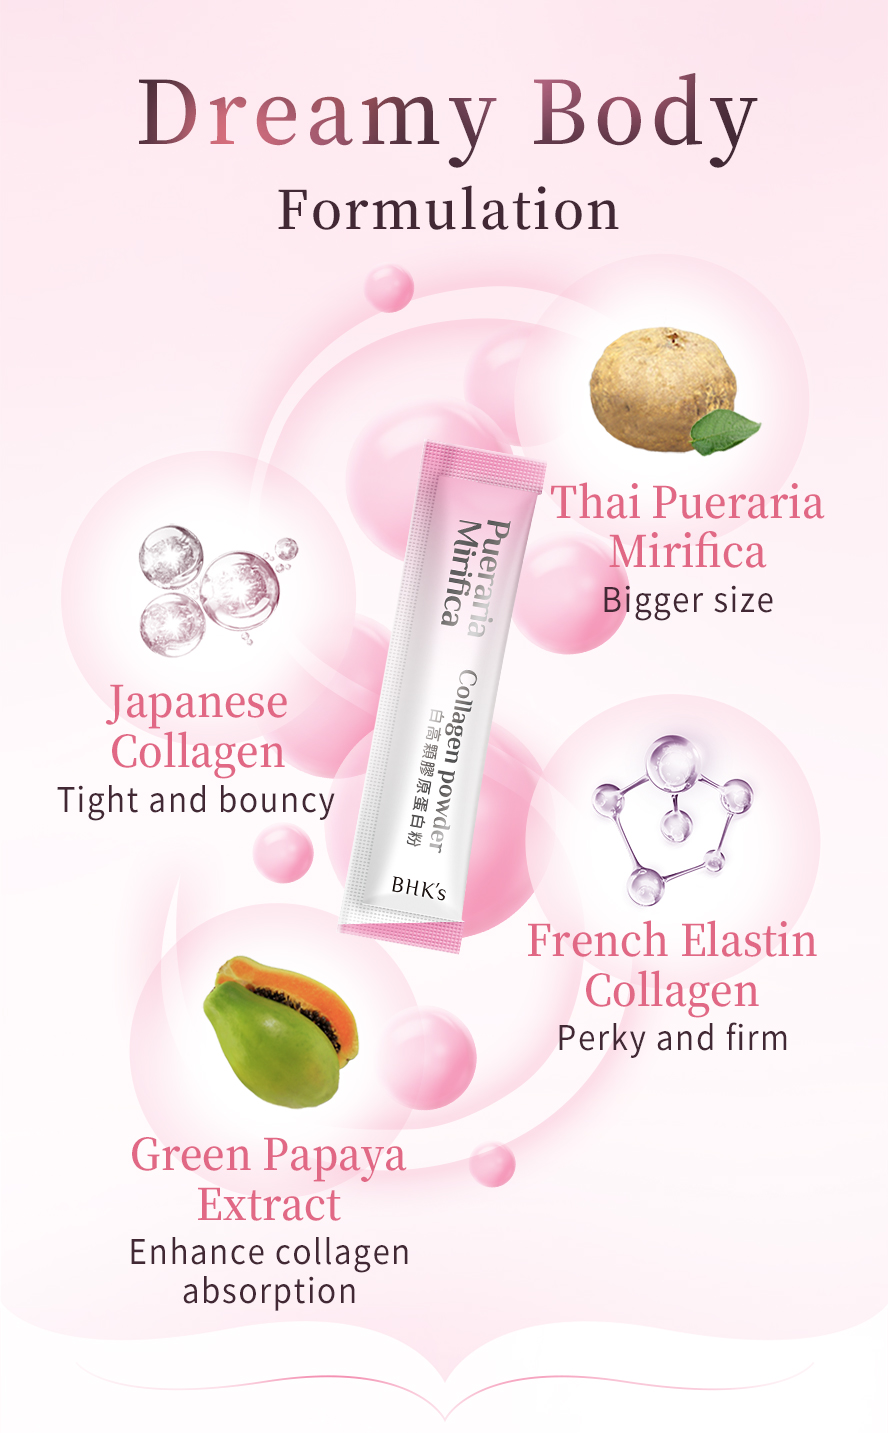 Made with Thai Pueraria Lobata and small molecule collagen peptide, ultimate formulation to enhance breast size and keep its firmness